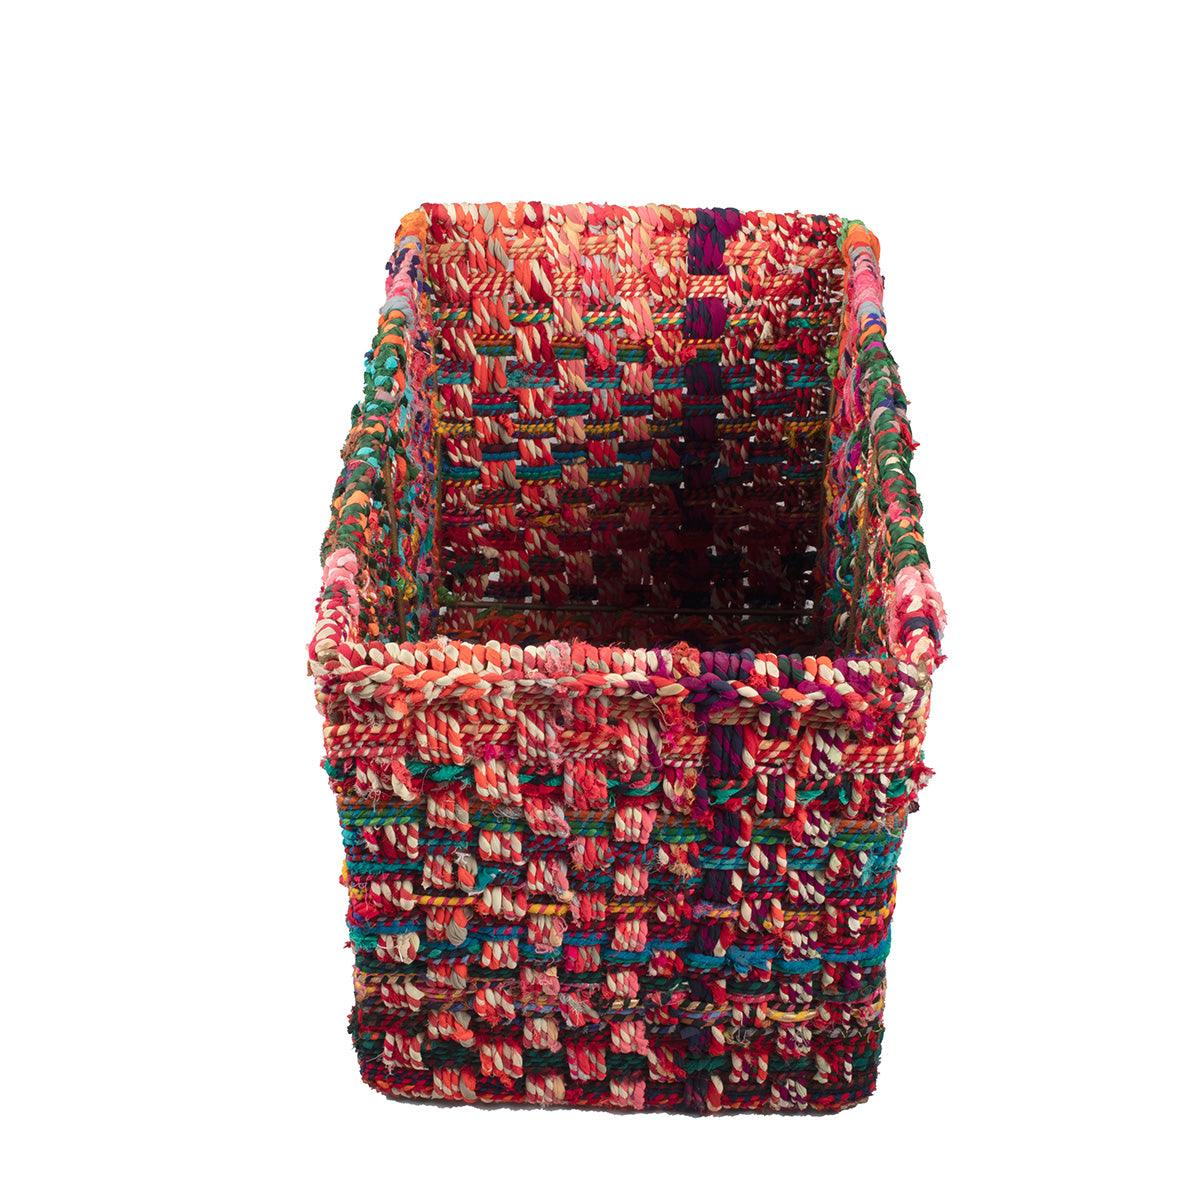 Ingrid Upcycled Textile Open Basket